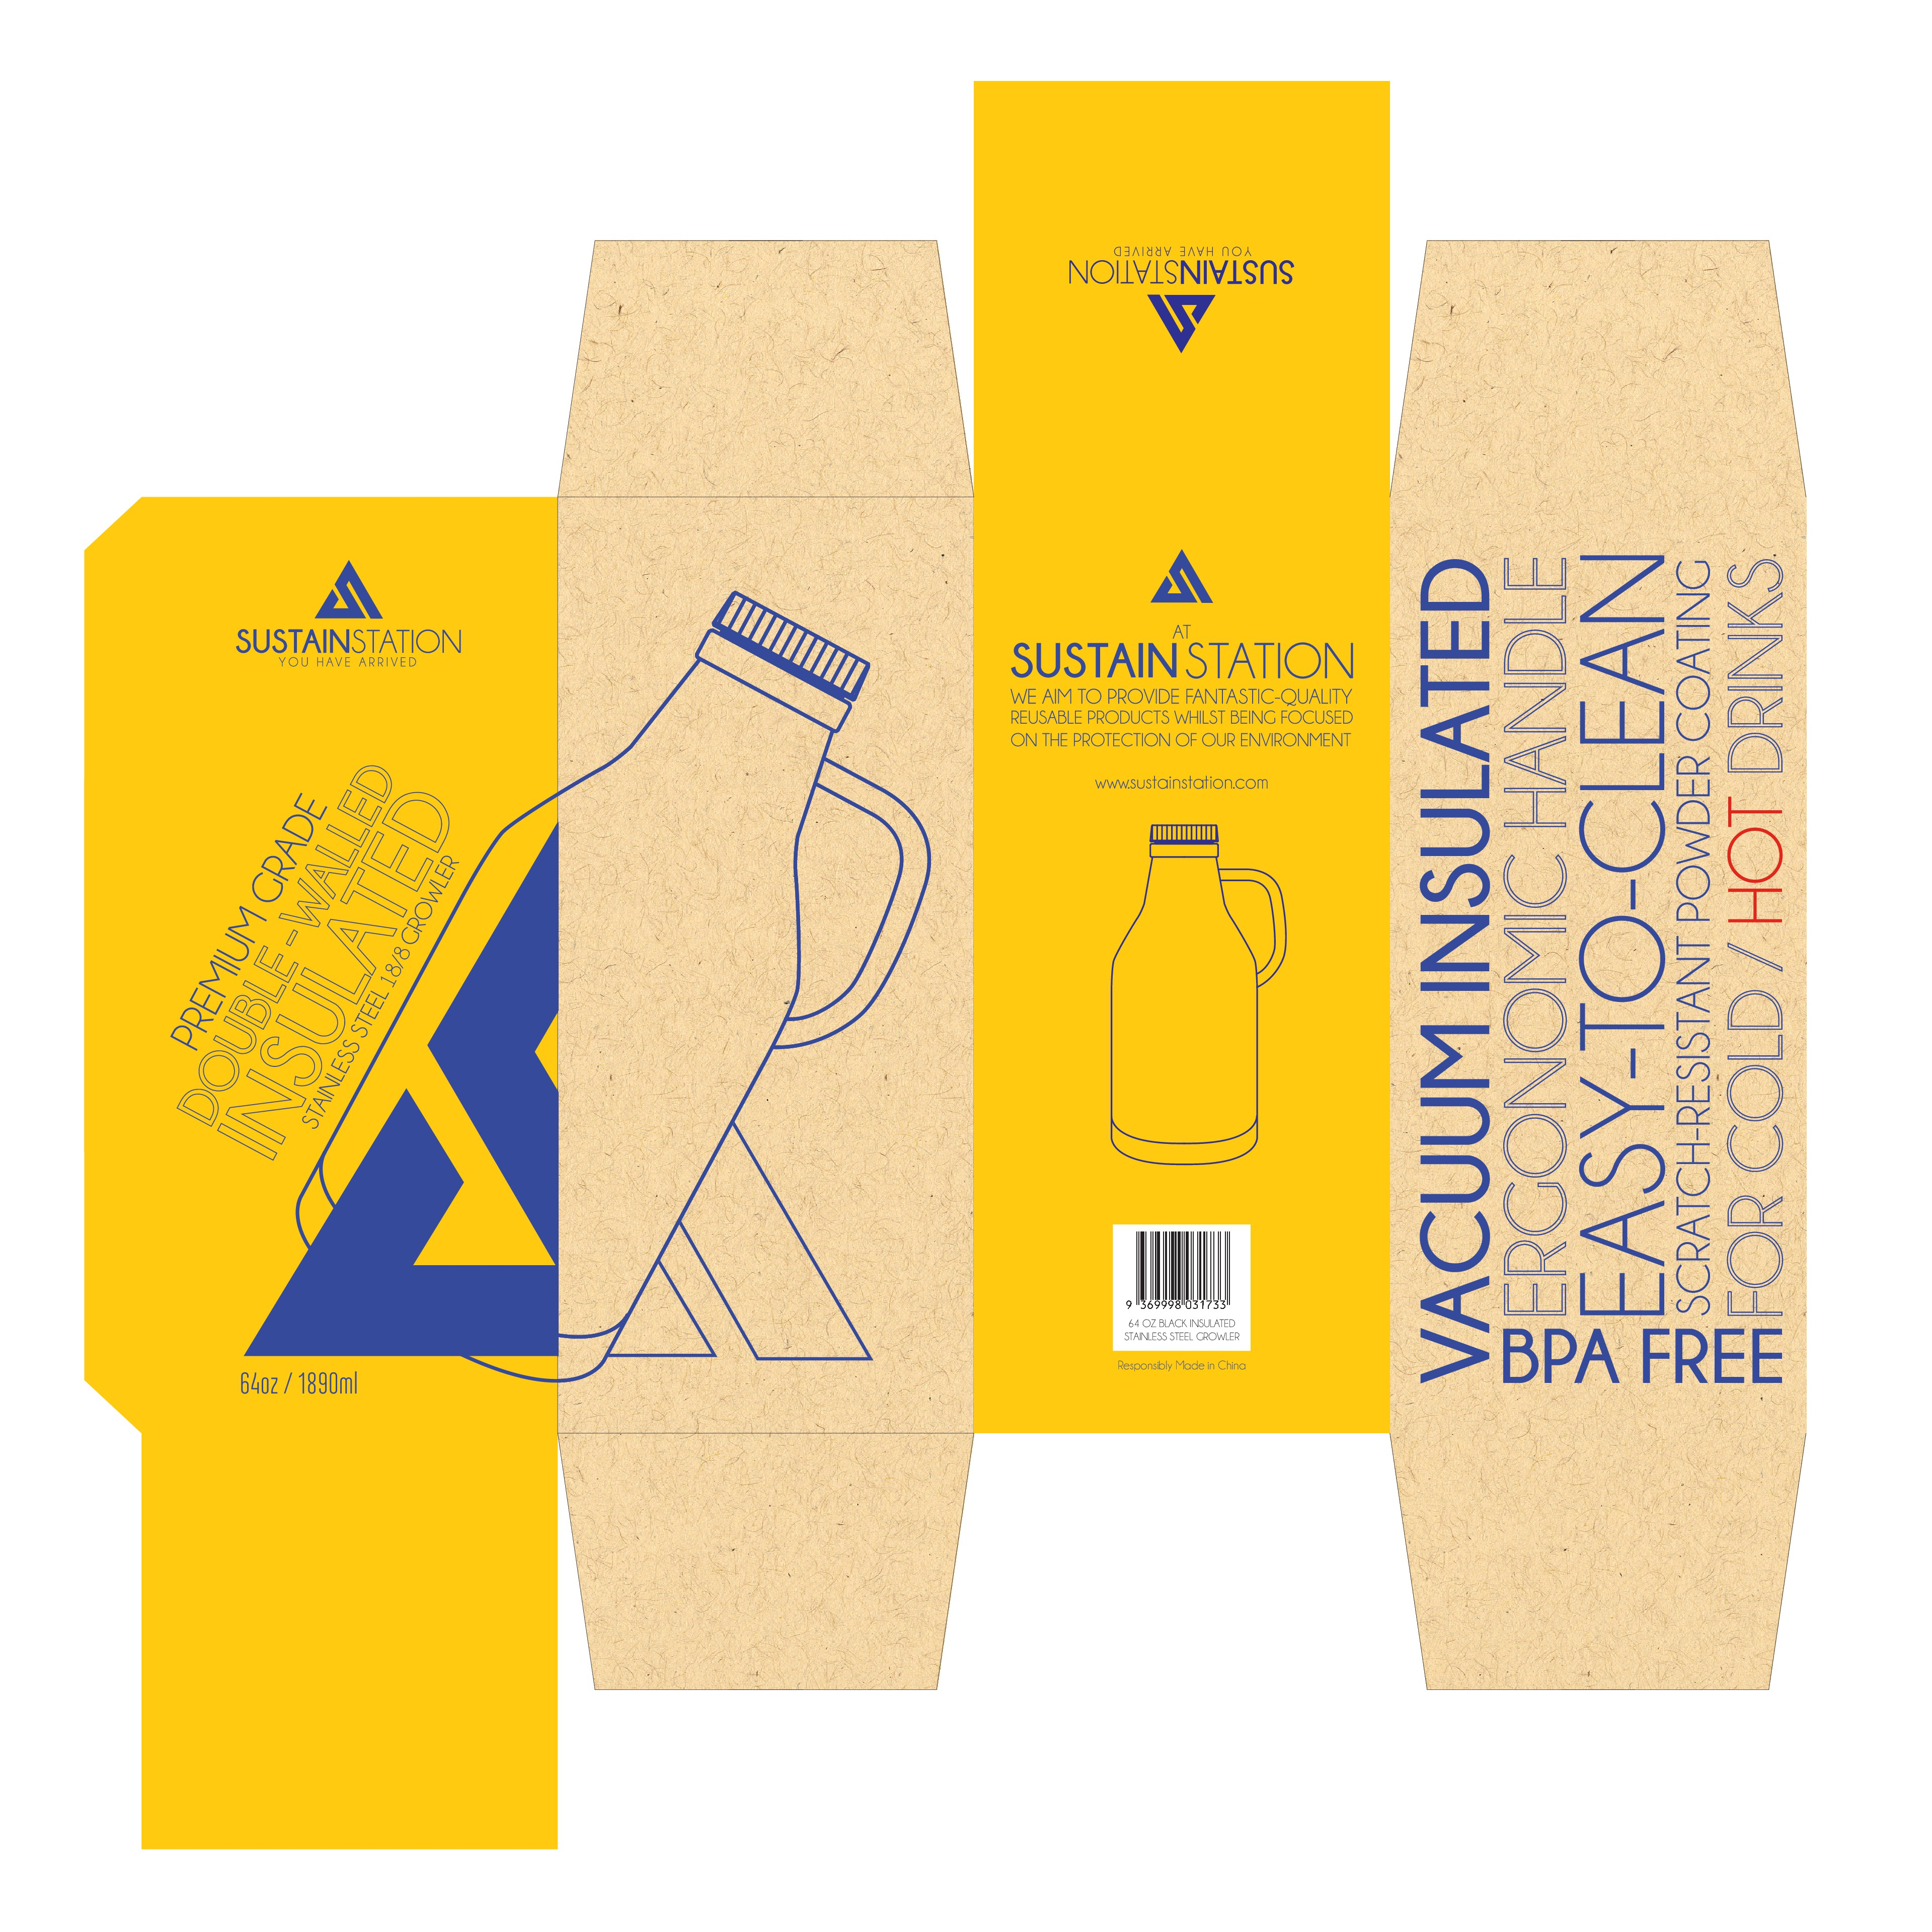 Create an amazing packaging design for a beer growler water bottle